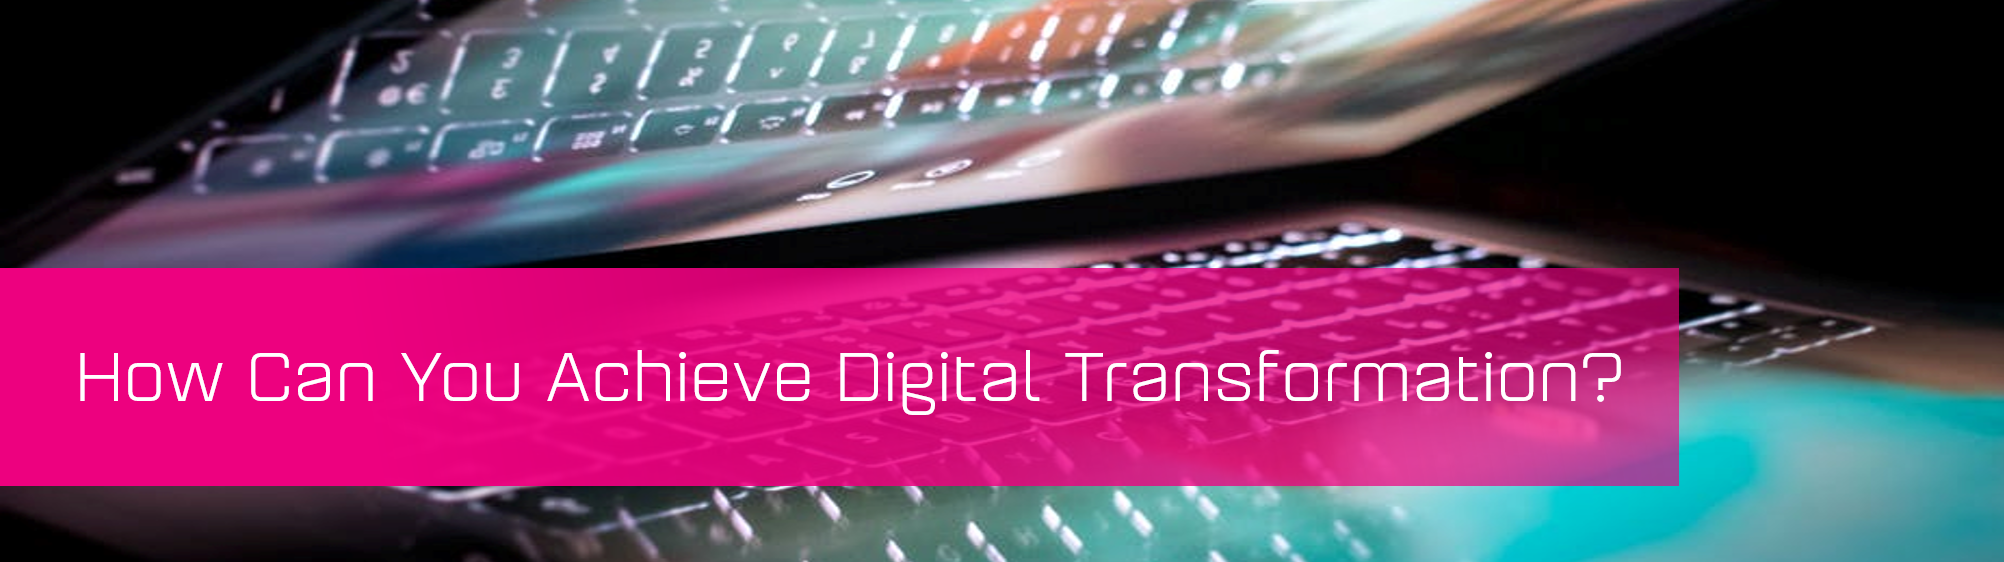 KCS SA - Blog - How Can You Achieve Digital Transformation banner